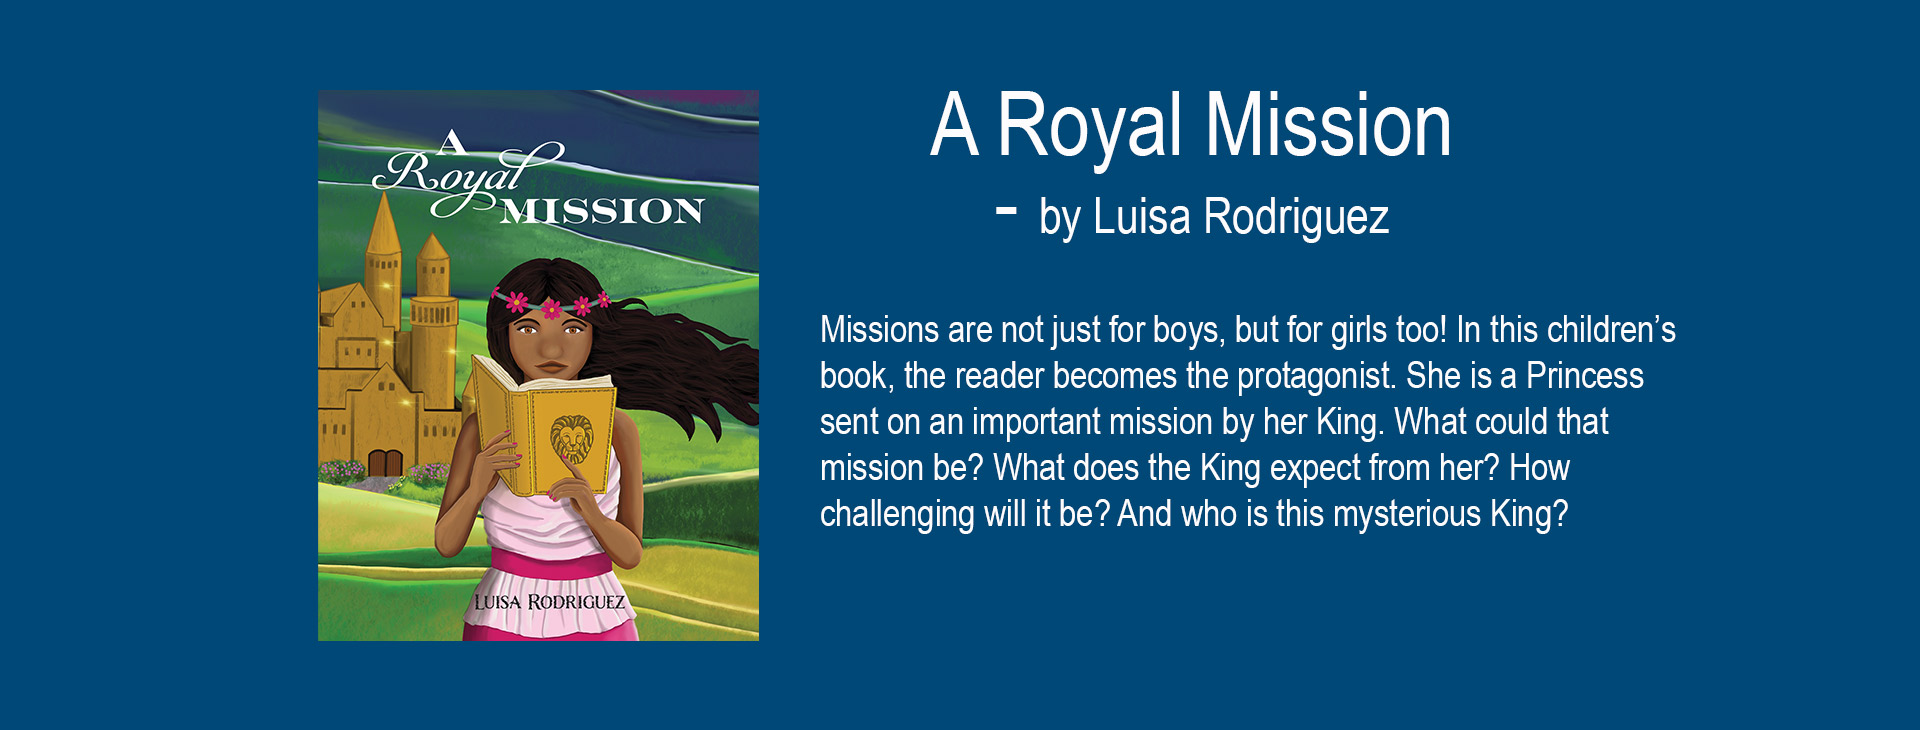 A Royal Mission Girls Christian Book Image